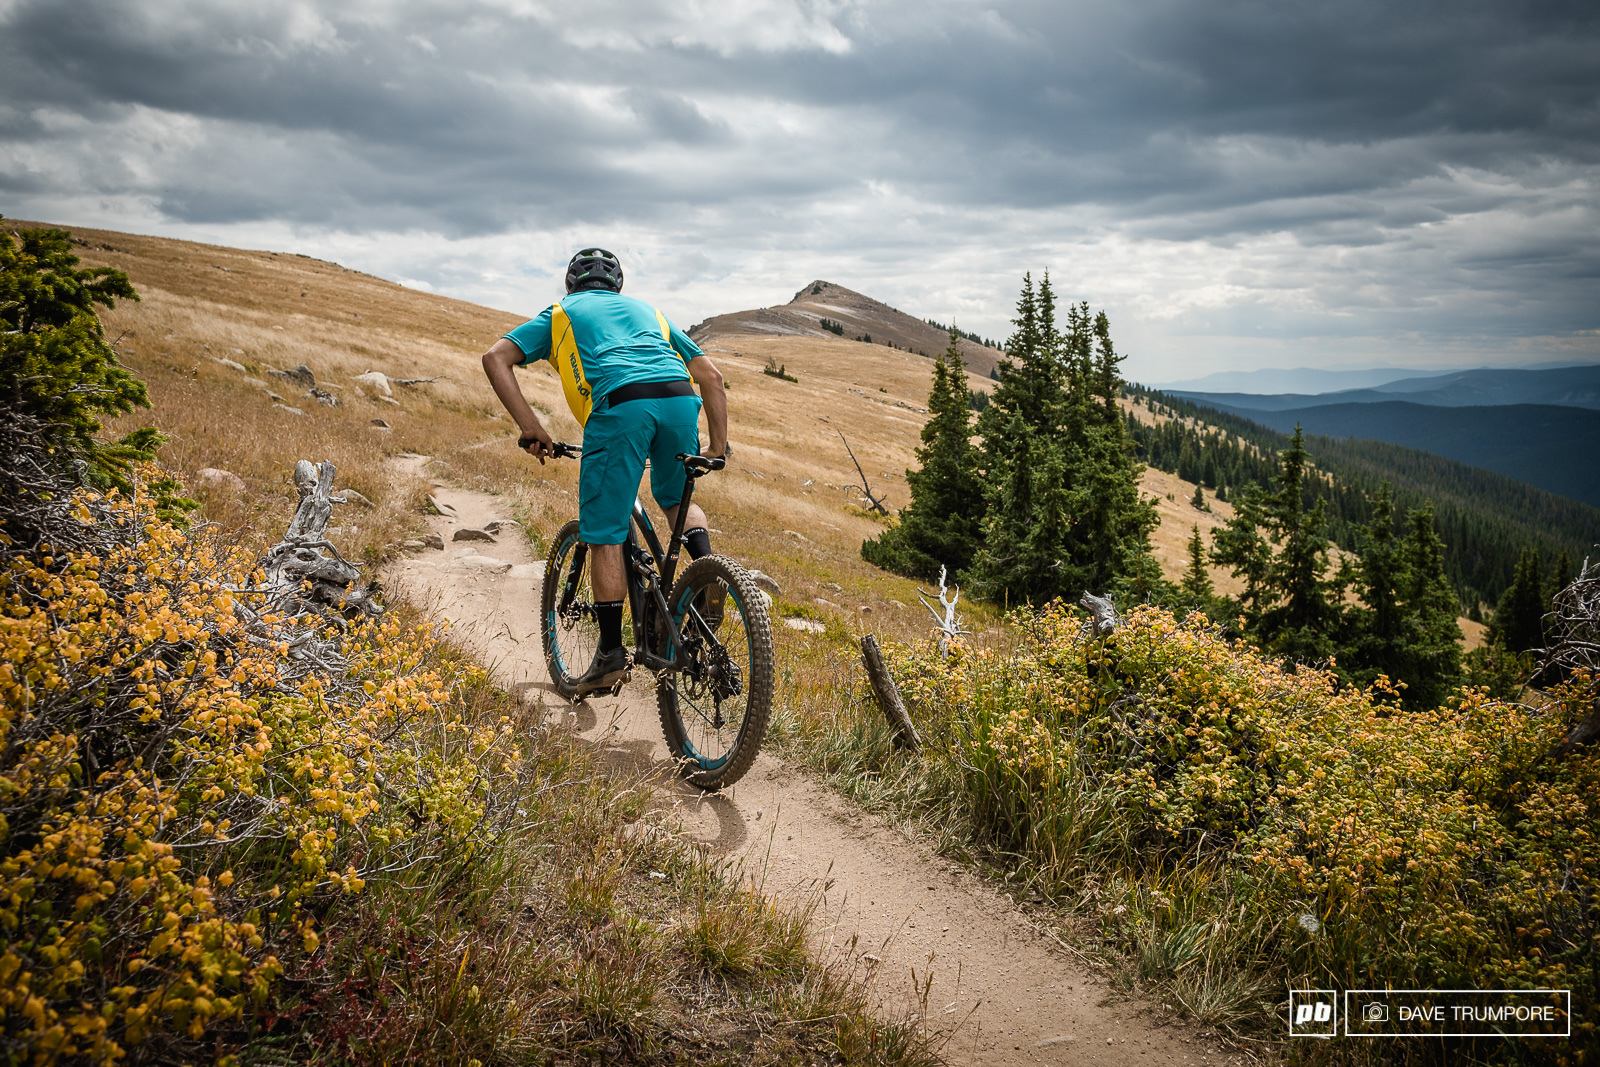 The first order of the day was the climb and traverse of Monarch Pass.